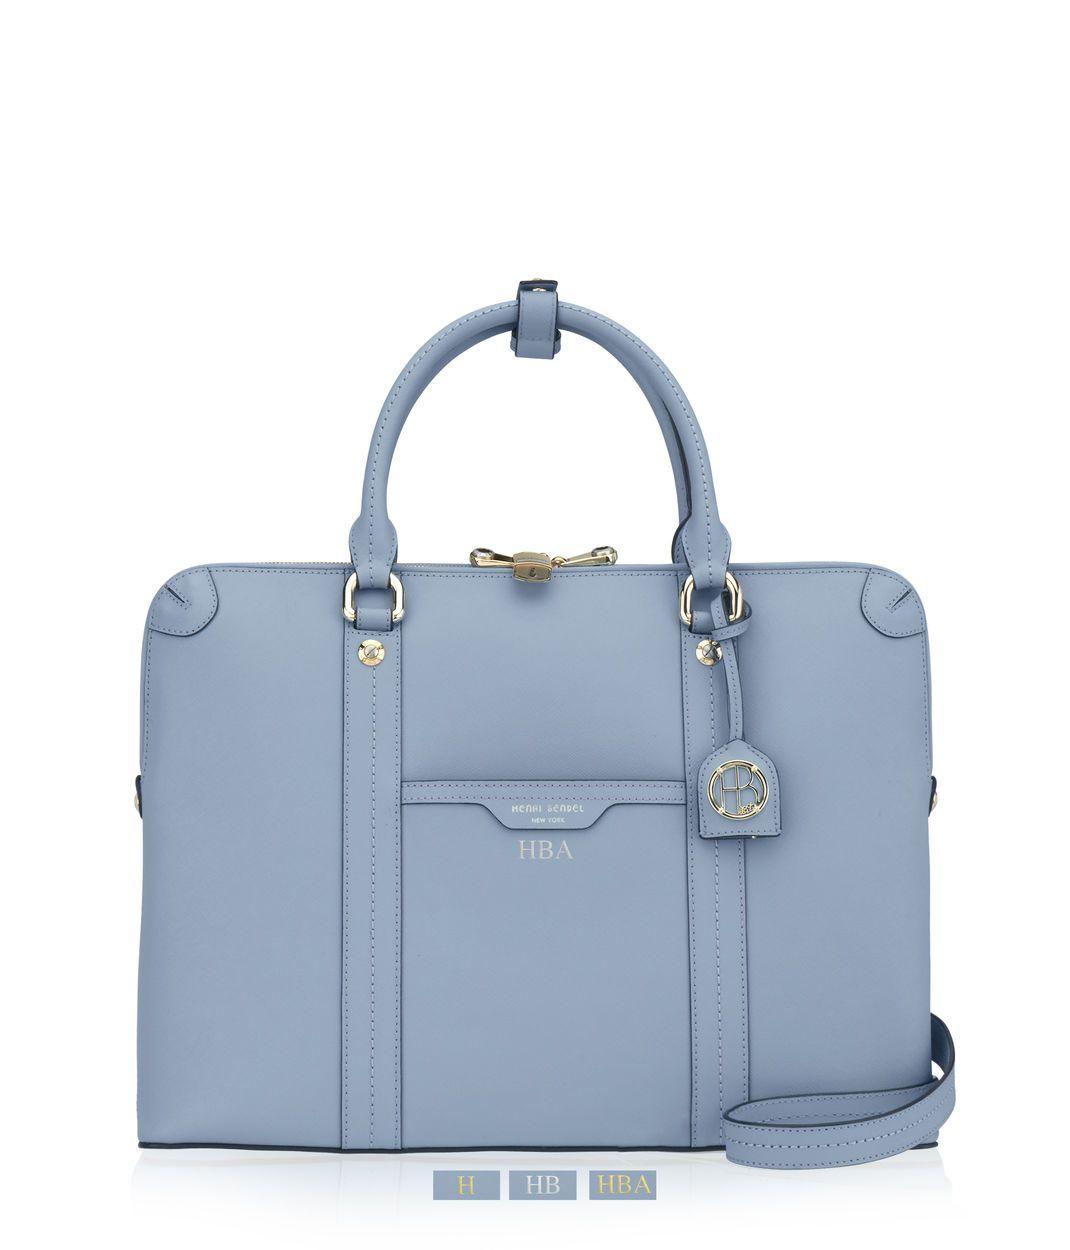 d11576dc27 The West 57th Briefcase belongs in every business-minded Bendel Girl s  luxury handbag collection. Designed with the modern professional woman in  mind with ...